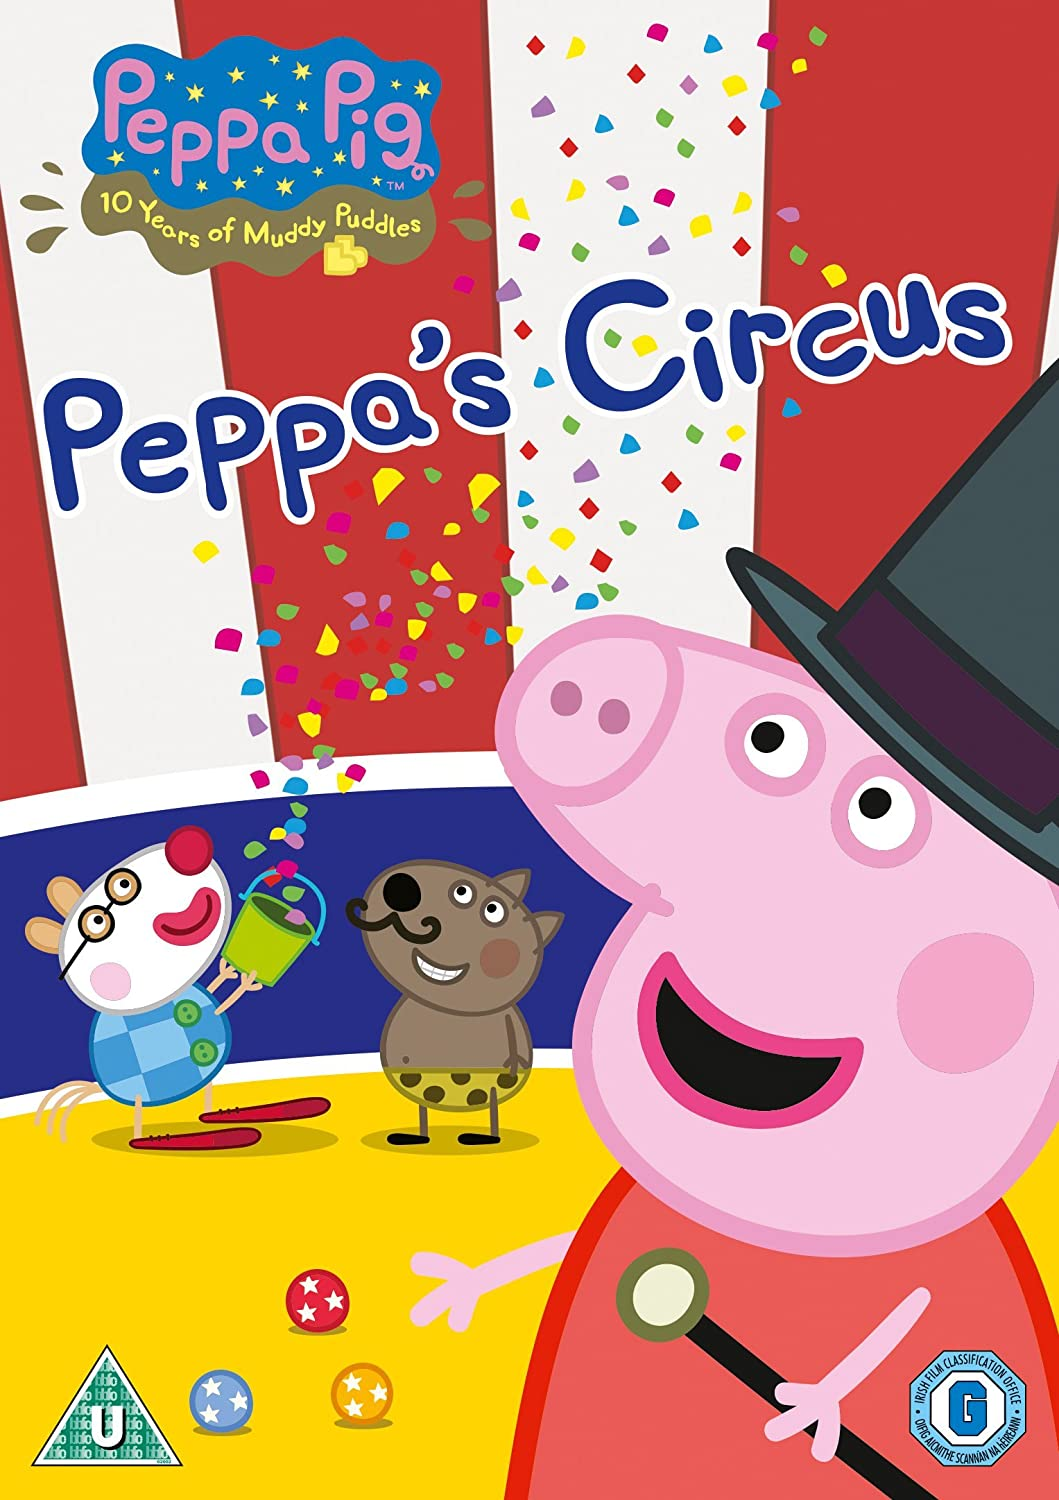 Pe peppa pig online coloring pages - Peppa Pig Peppa S Circus